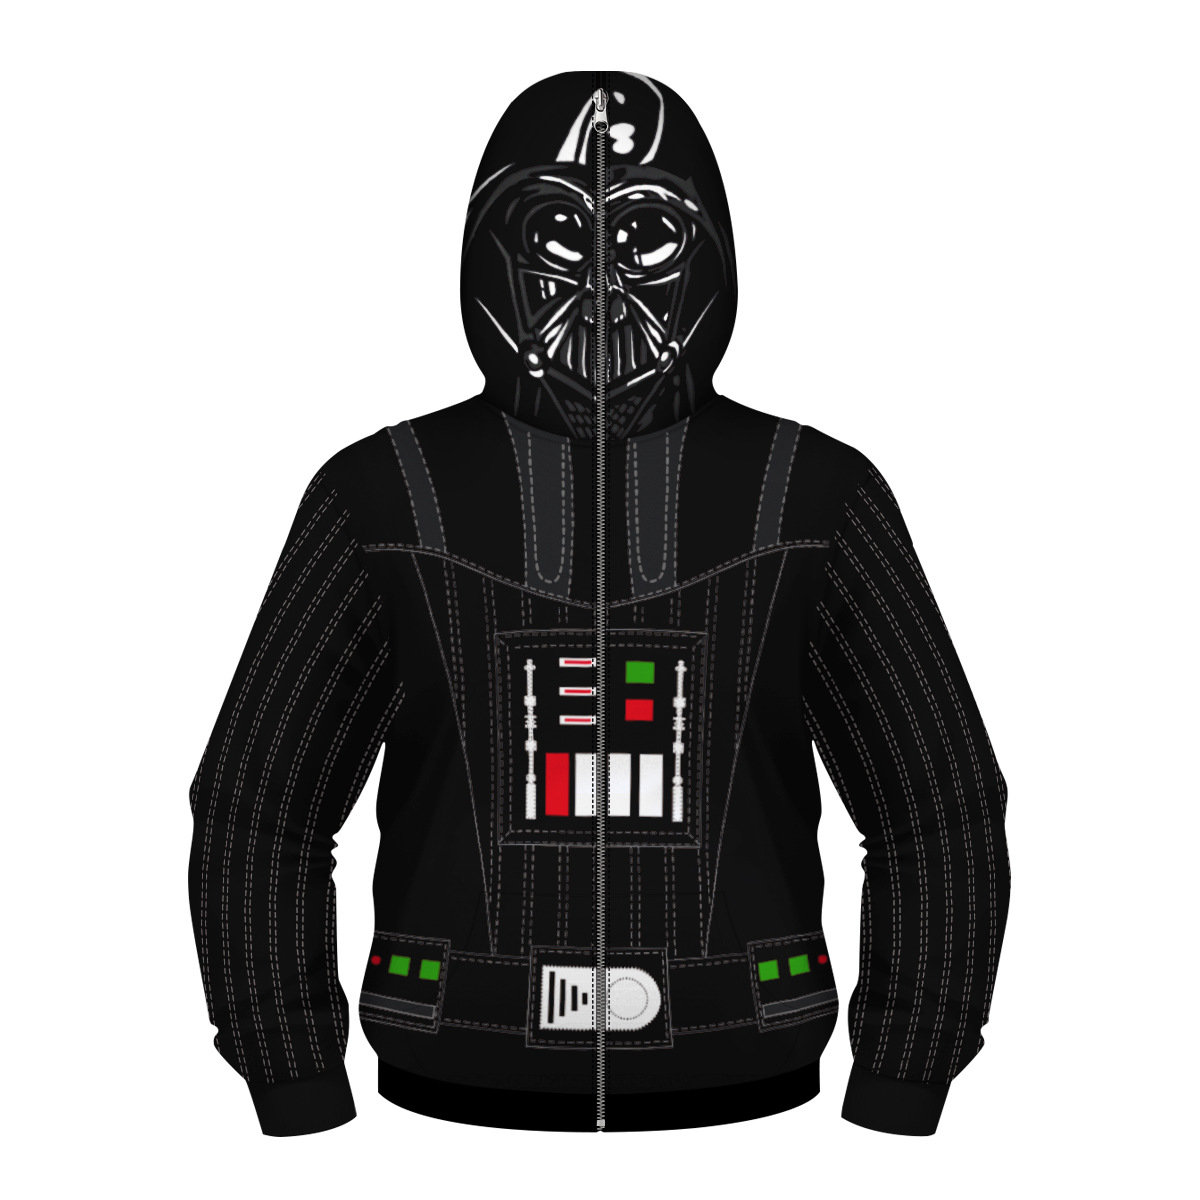 New arrival STAR WAR Dark Lord Darth Vader Carnival Costume Kid Cosplay Zipper Jacket Movie Halloween Cosplay Costume Plus Size